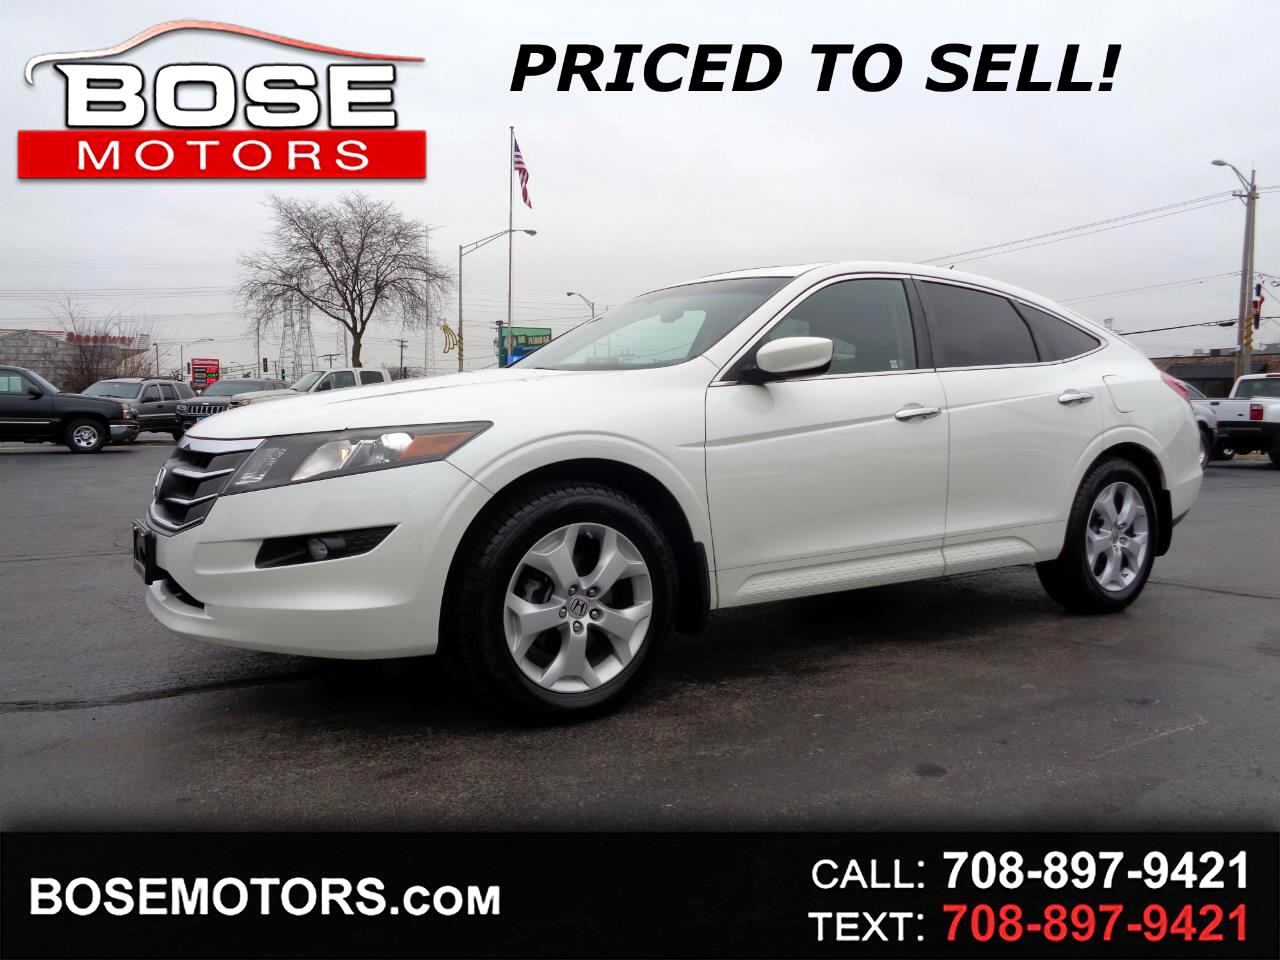 2011 Honda Accord Crosstour EX-L 4WD 5-Spd AT w/Nav